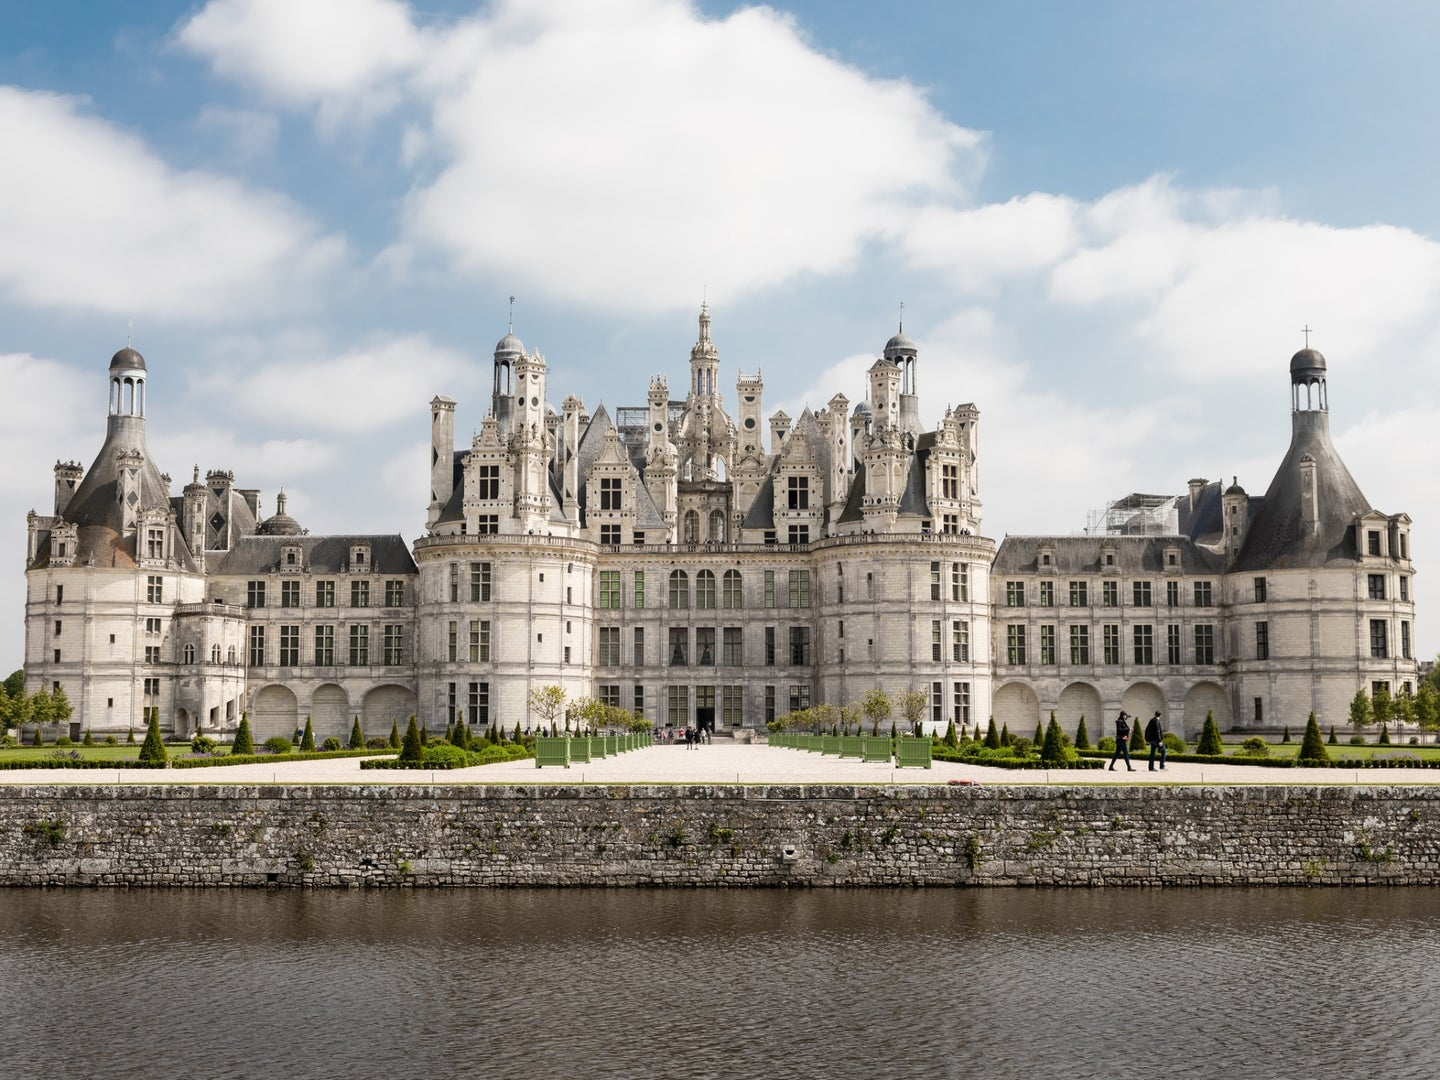 The Château de Chambord in Chambord, France, which may not make a great memory palace.